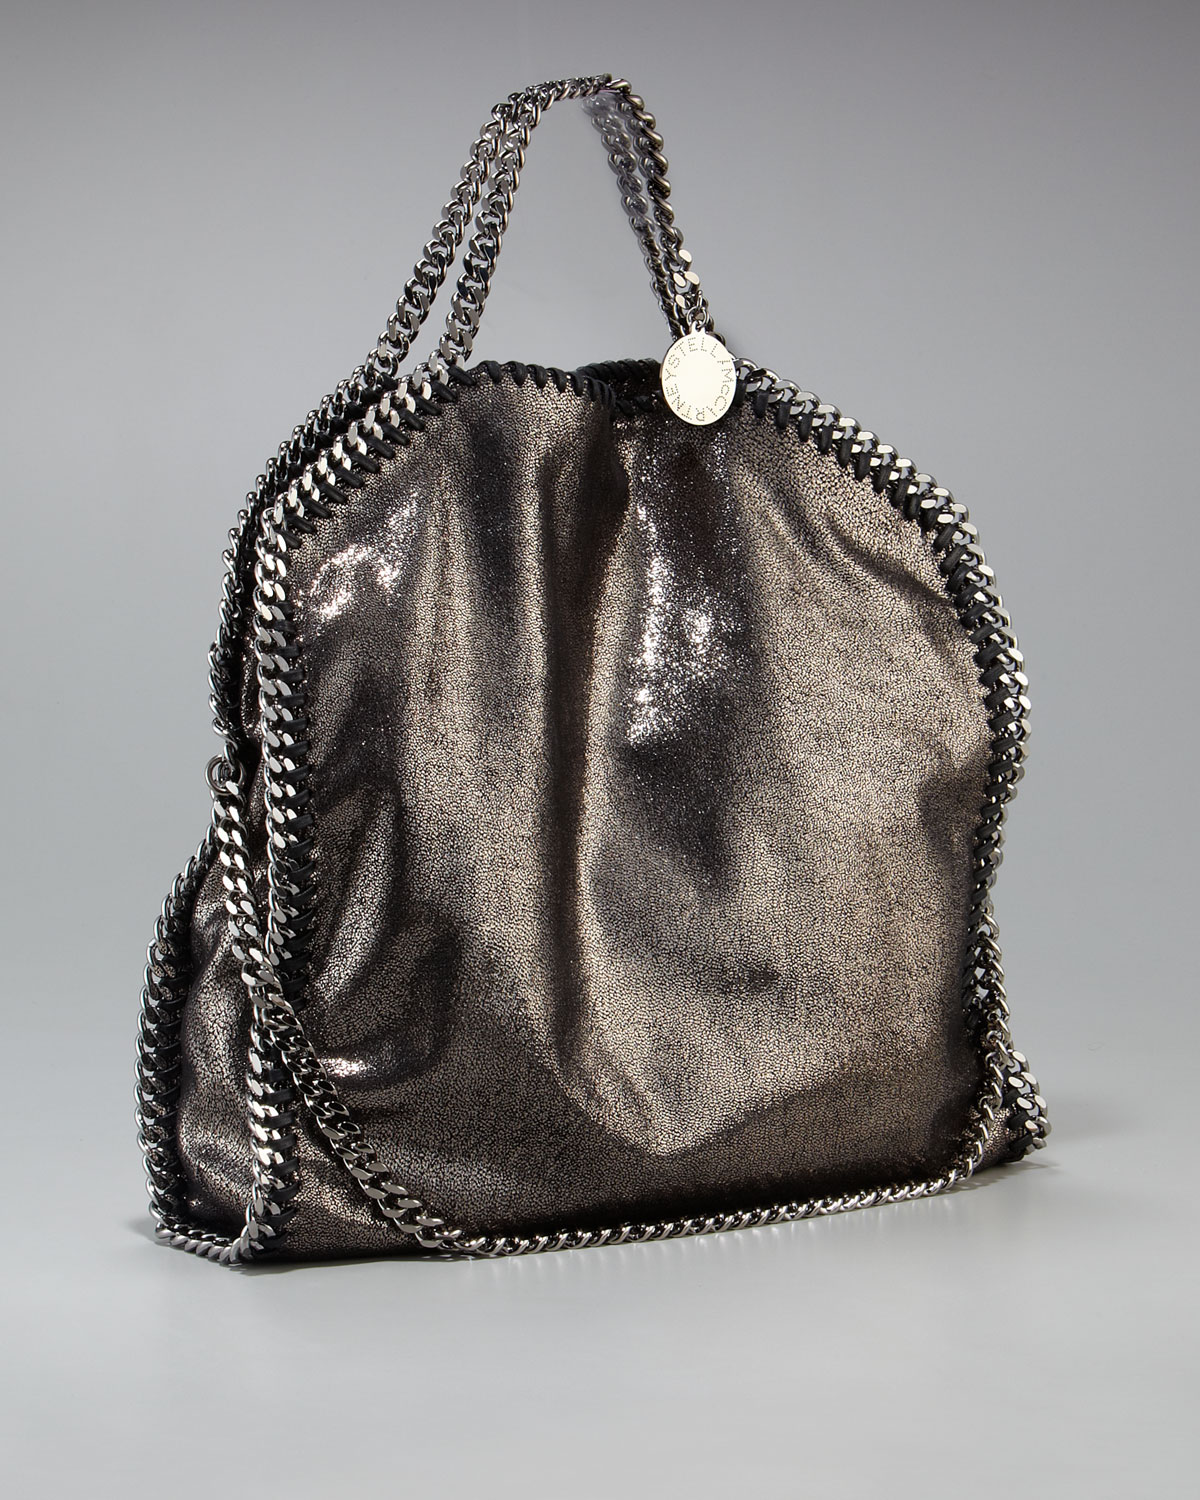 Stella McCartney Bags